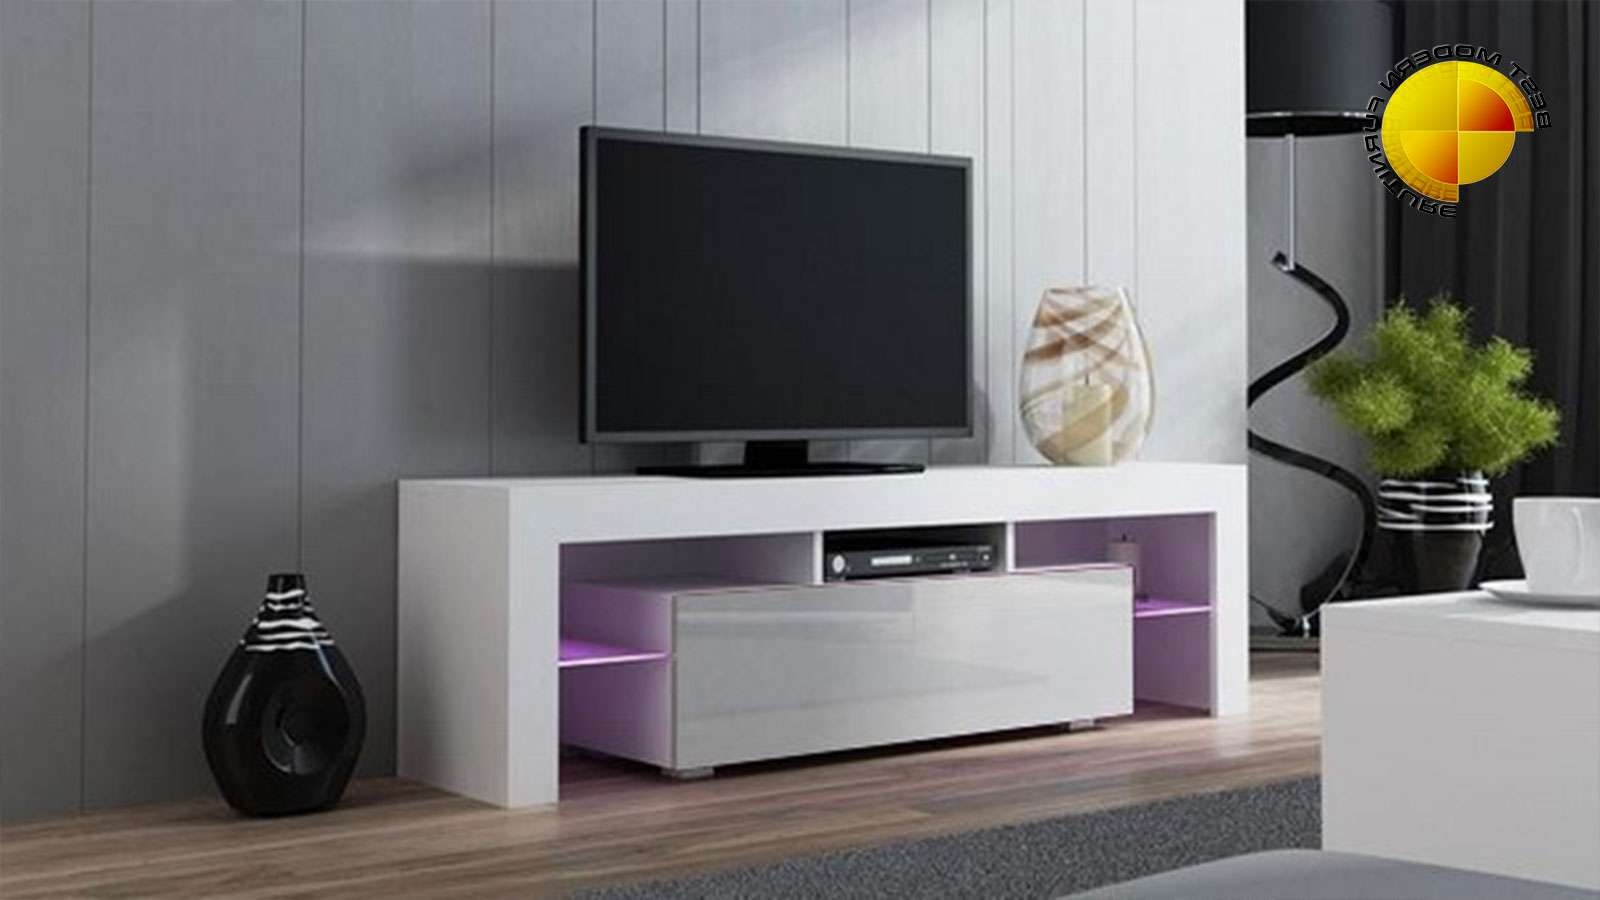 Modern Tv Stand 160Cm High Gloss Cabinet Rgb Led Lights White Unit Throughout White High Gloss Tv Stands (View 13 of 20)